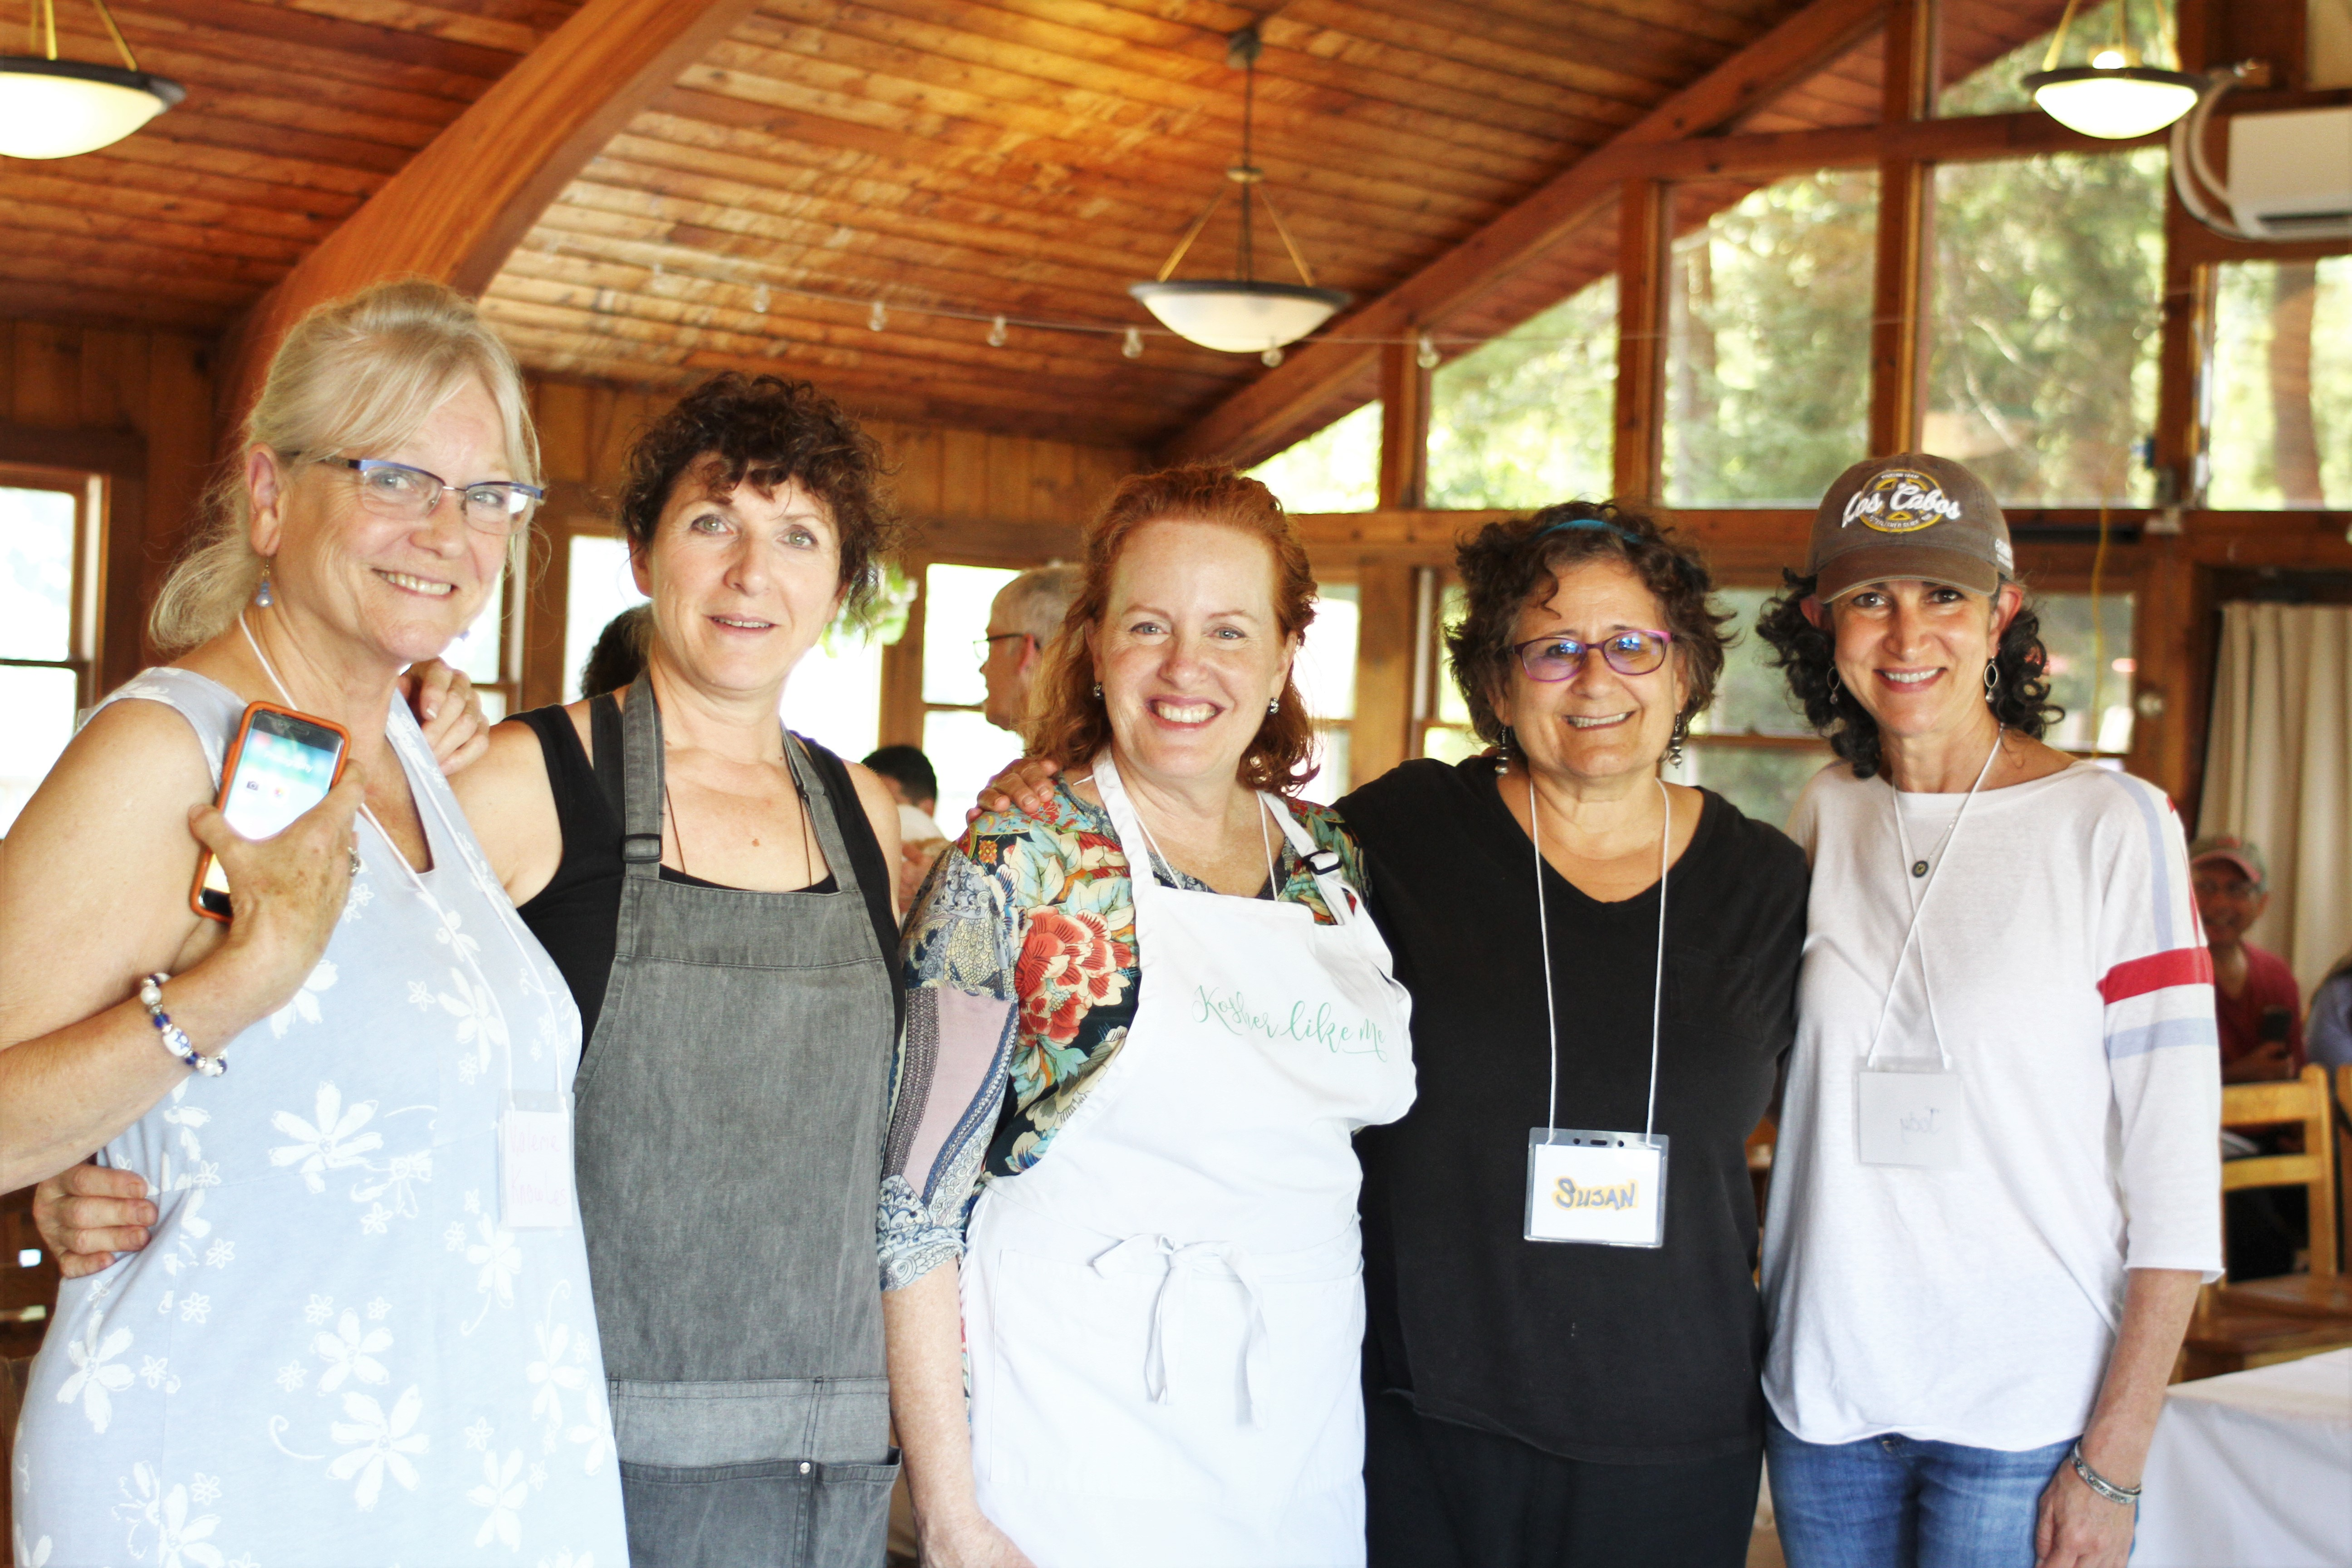 (L-R) Valerie Knowles, Dona Simons, Liz Reuven, Susan Barocas and Jody Gelfand at the Hazon Food Conference. Courtesy of Hazon